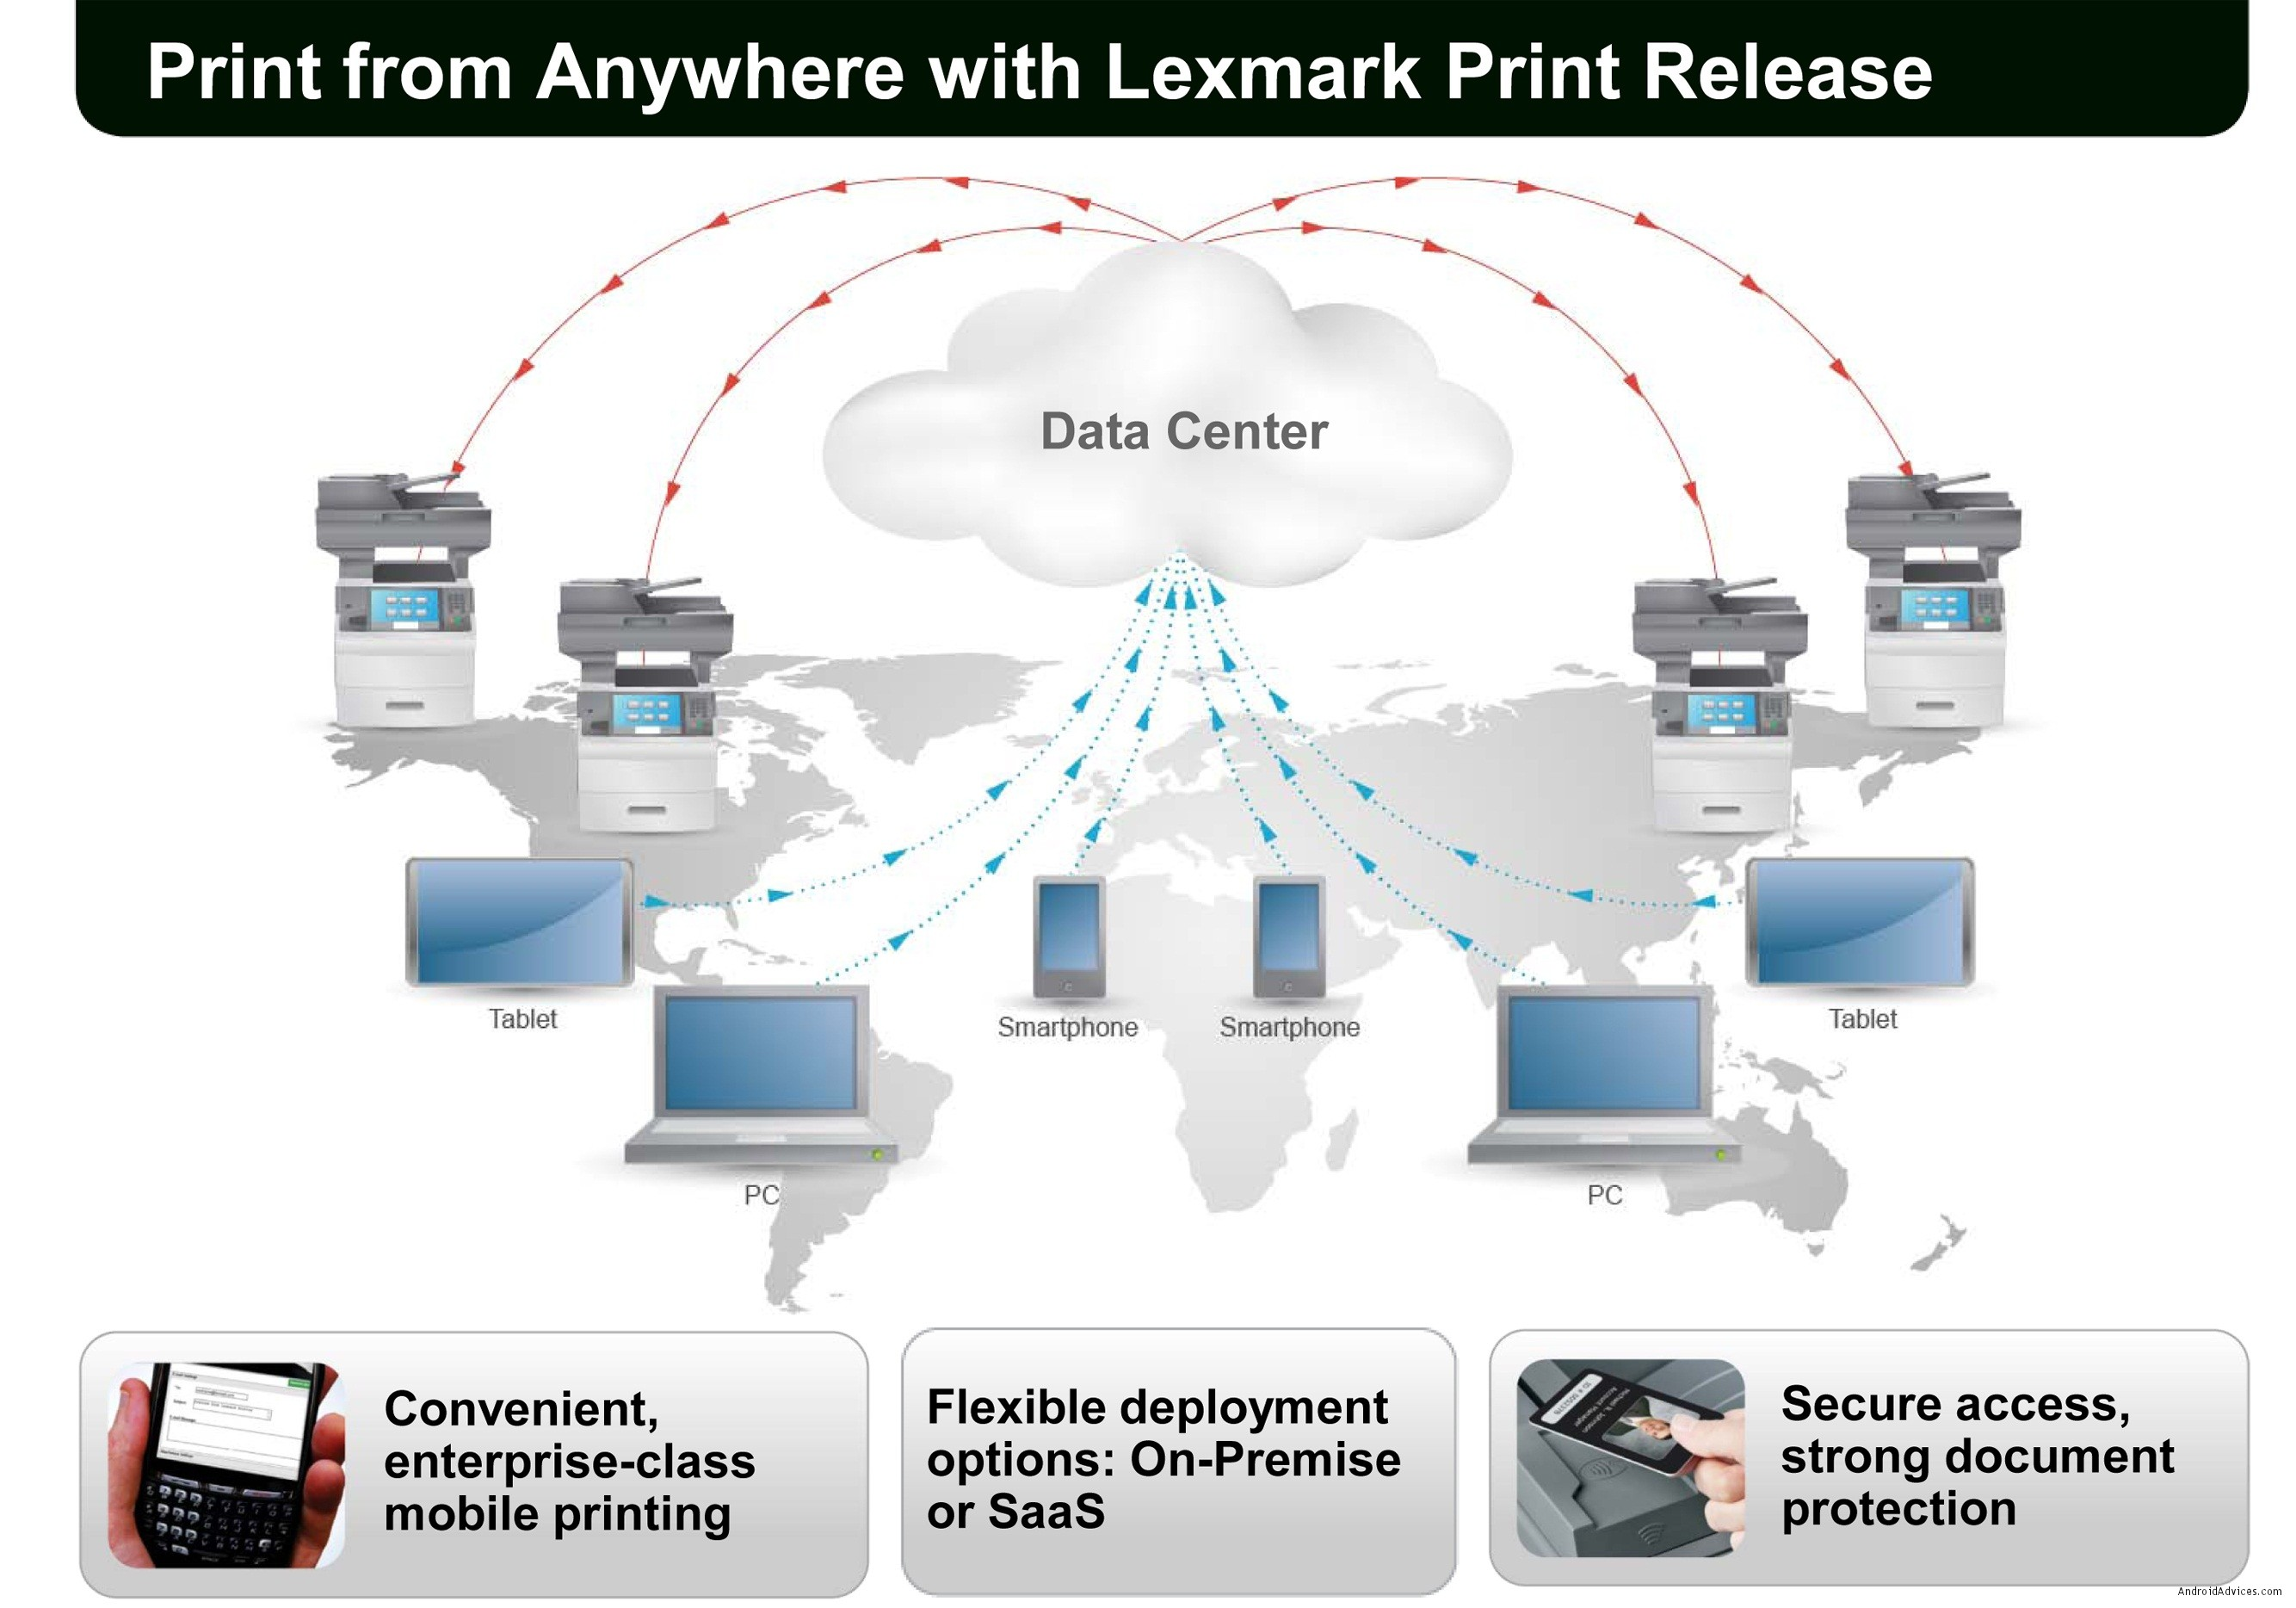 The technology of cloud printing